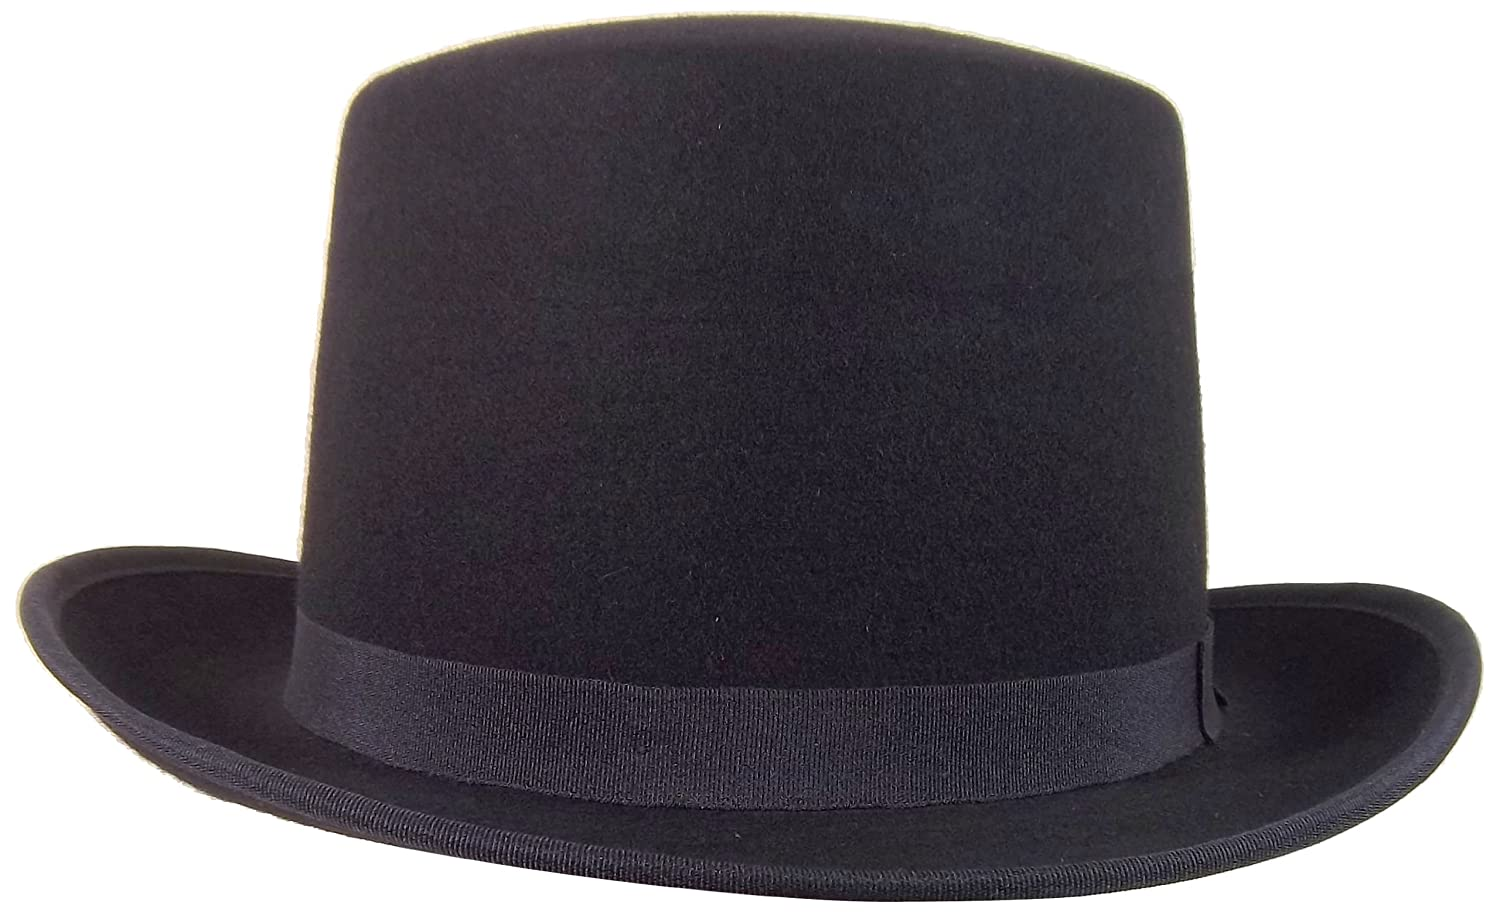 Jacobson Hat Company Wool Felt Top 5.75 Inch Tall, Black, Large/X-Large 22879 BKAL